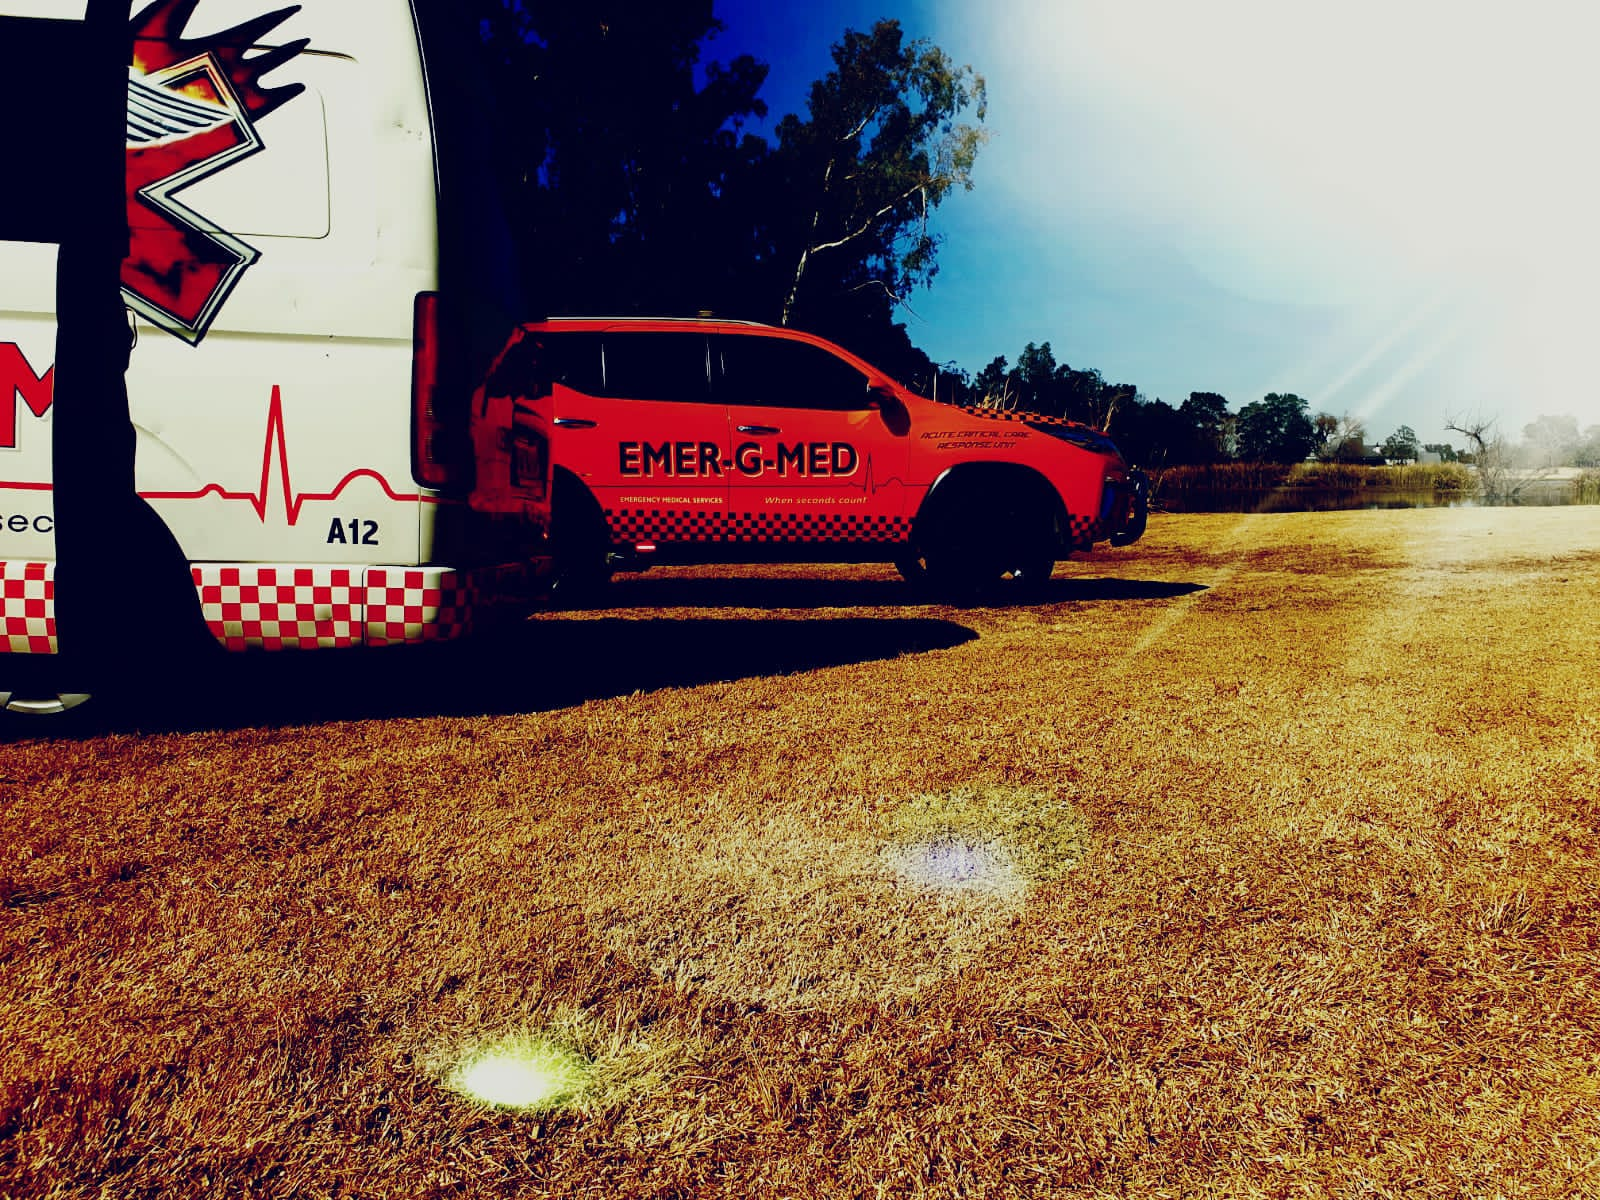 Cyclist injured in a fall at Benoni Country Club